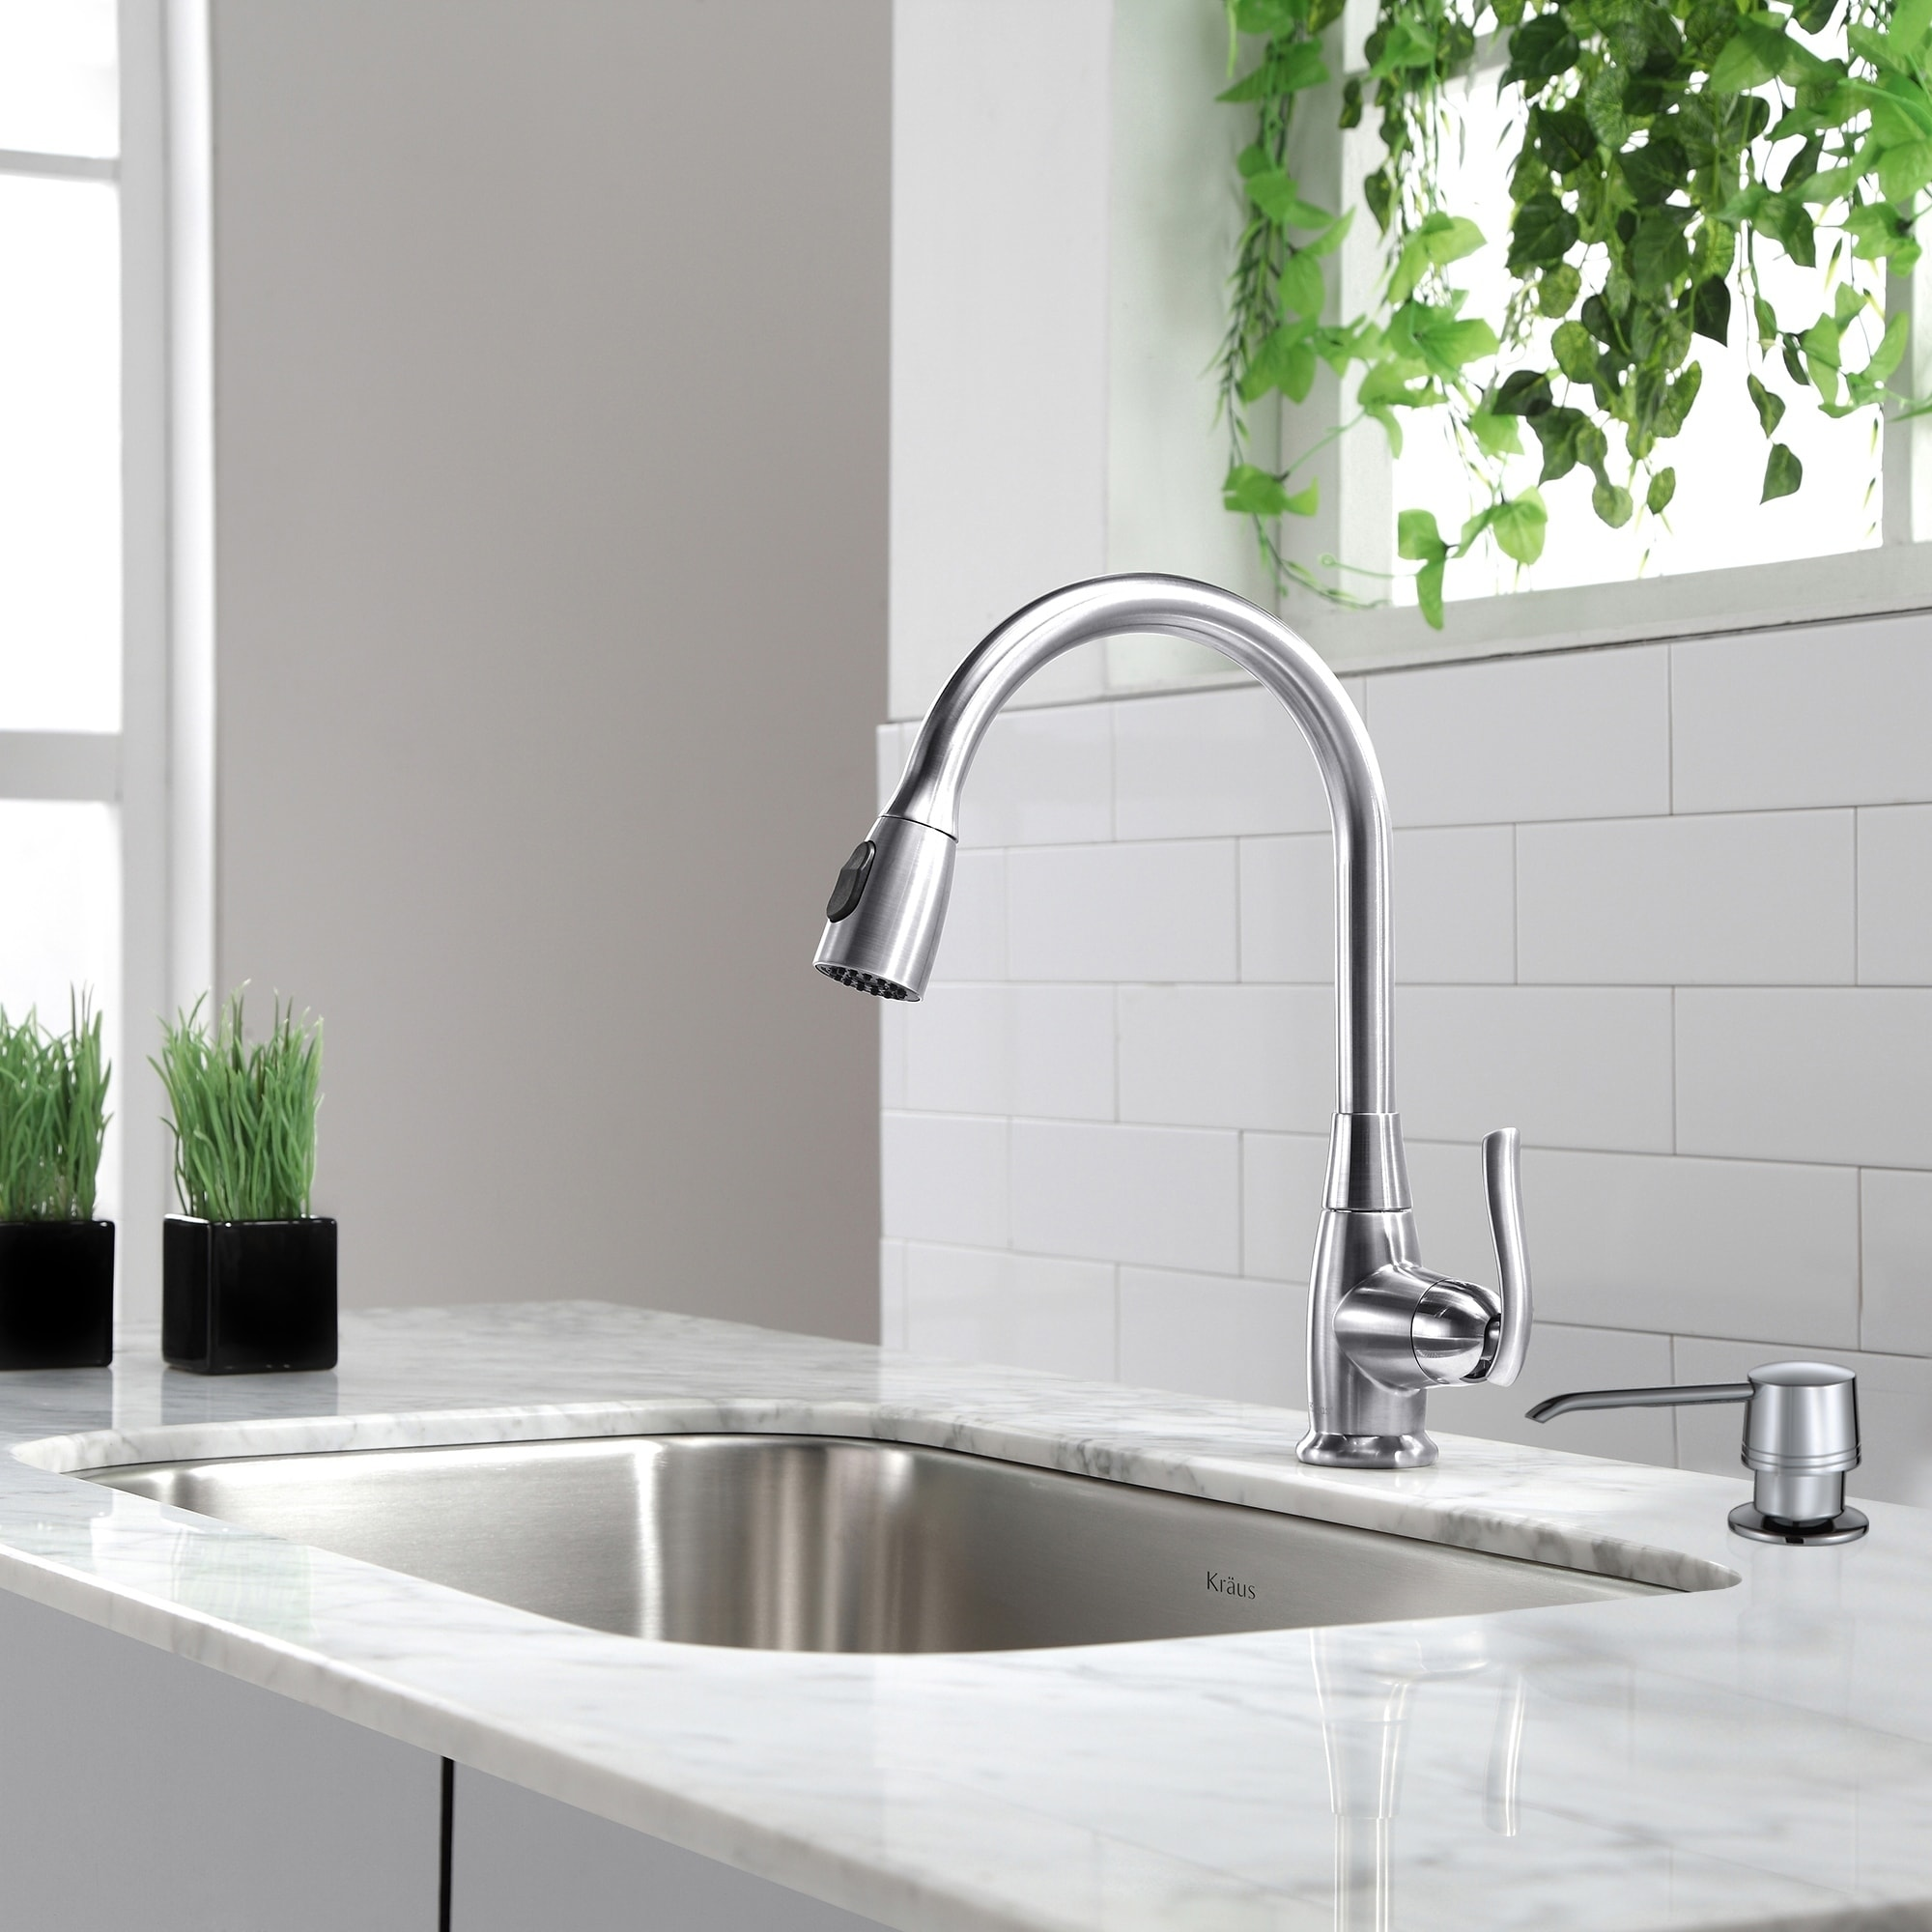 Shop kraus kpf 2230 high arch 1 handle 2 function sprayhead pull down kitchen faucet and soap dispensers free shipping today overstock com 6172984